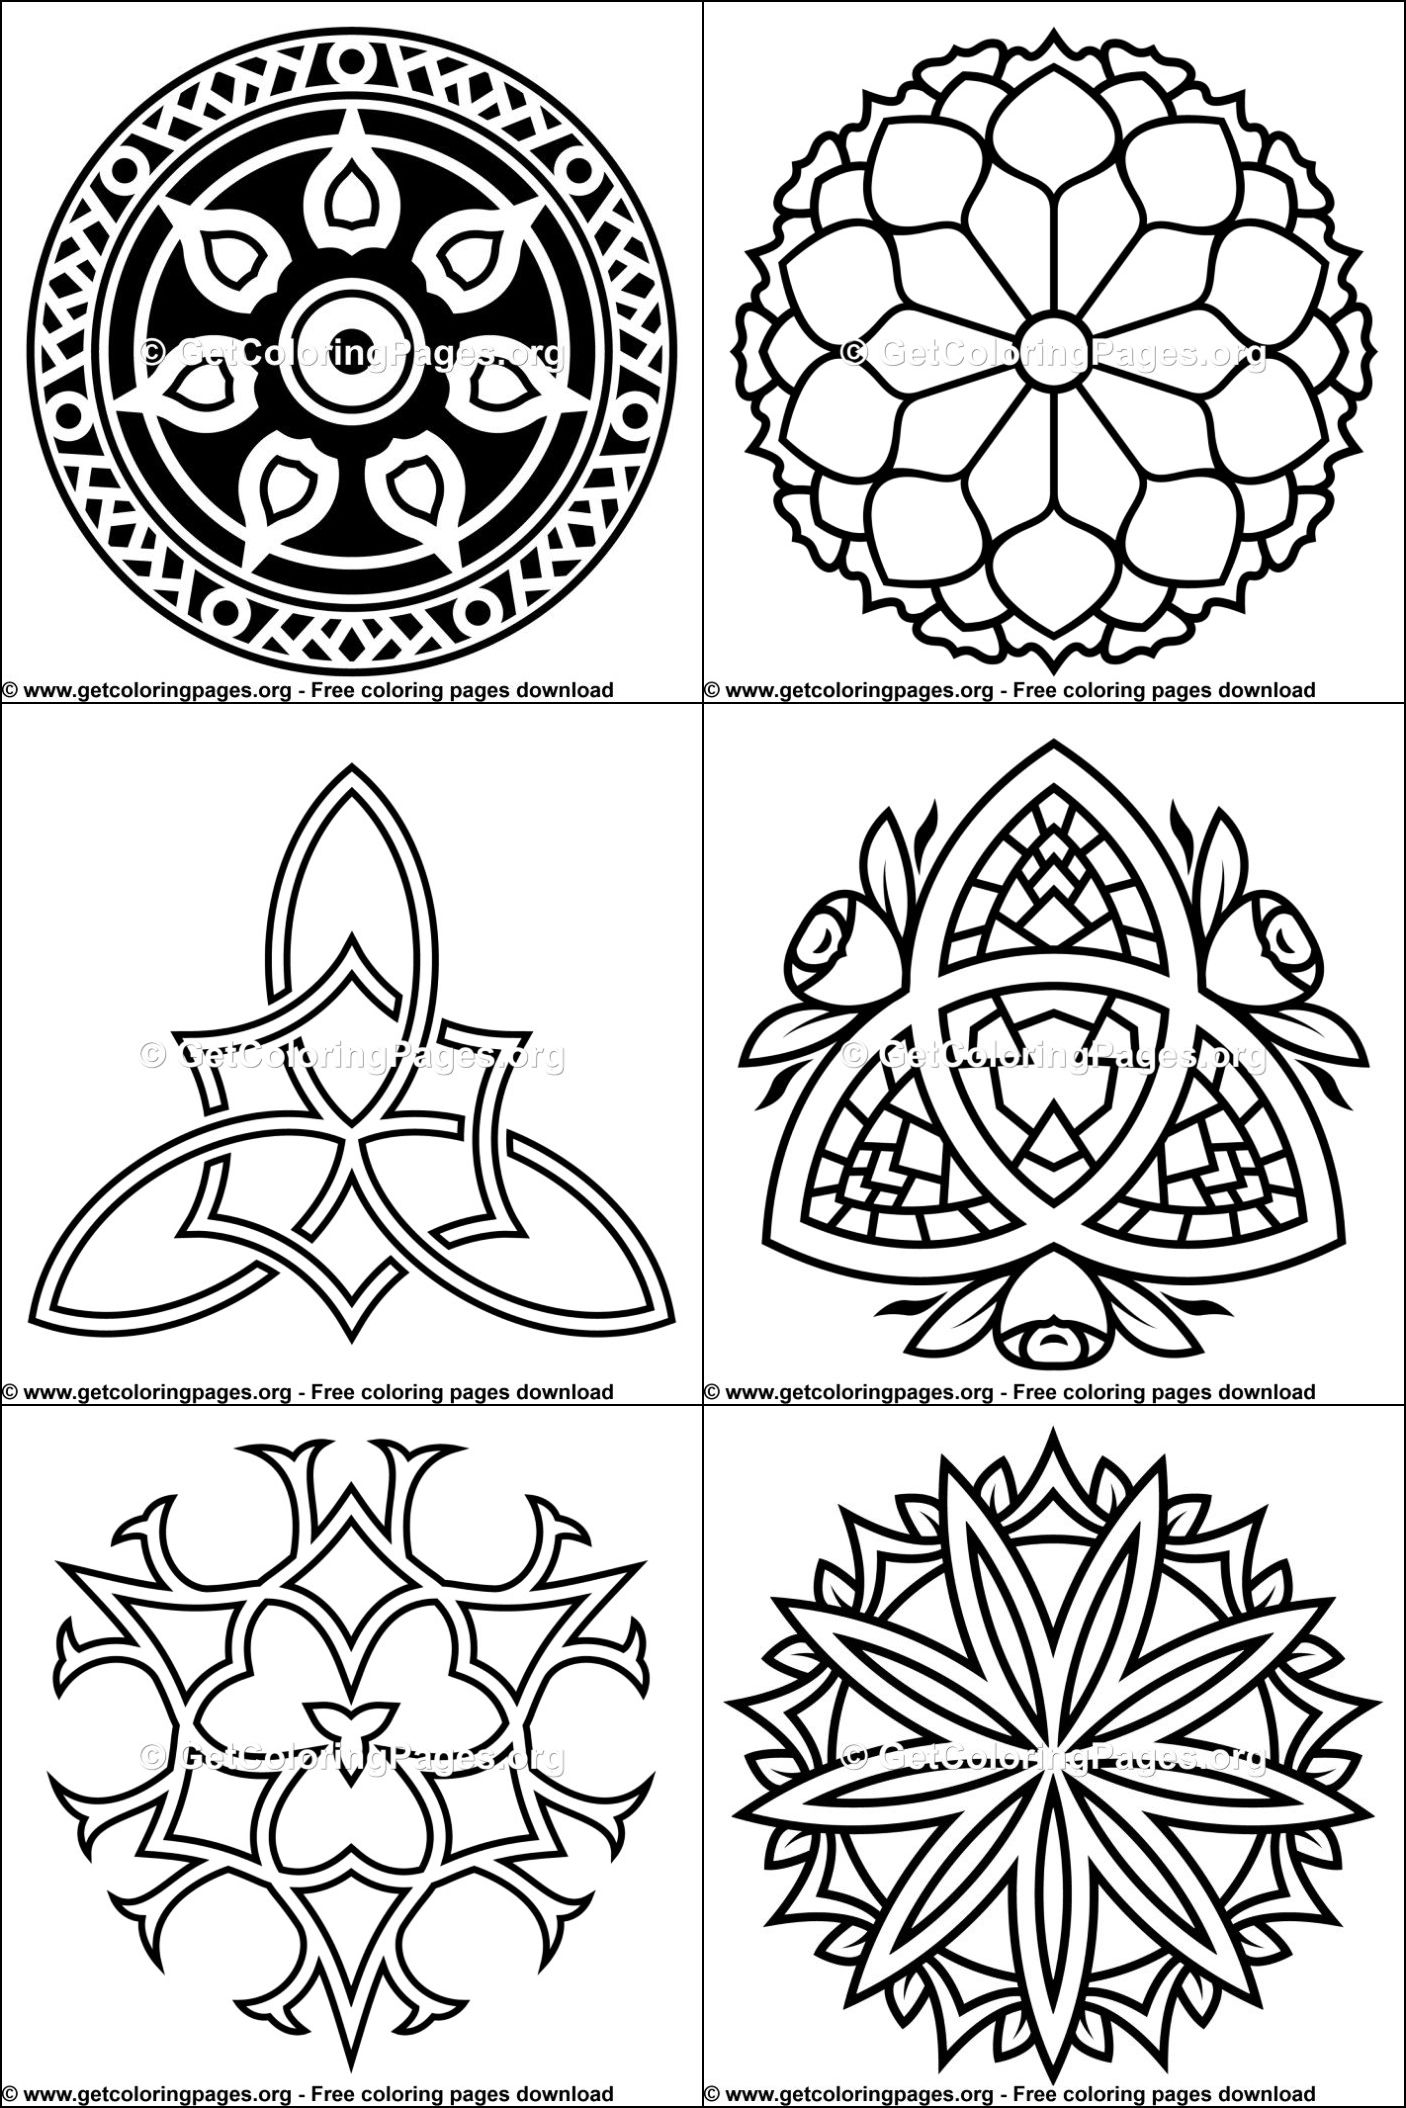 Advanced Online Coloring Pages Kids Printable Coloring Pages Bunny Coloring Pages Online Coloring Pages